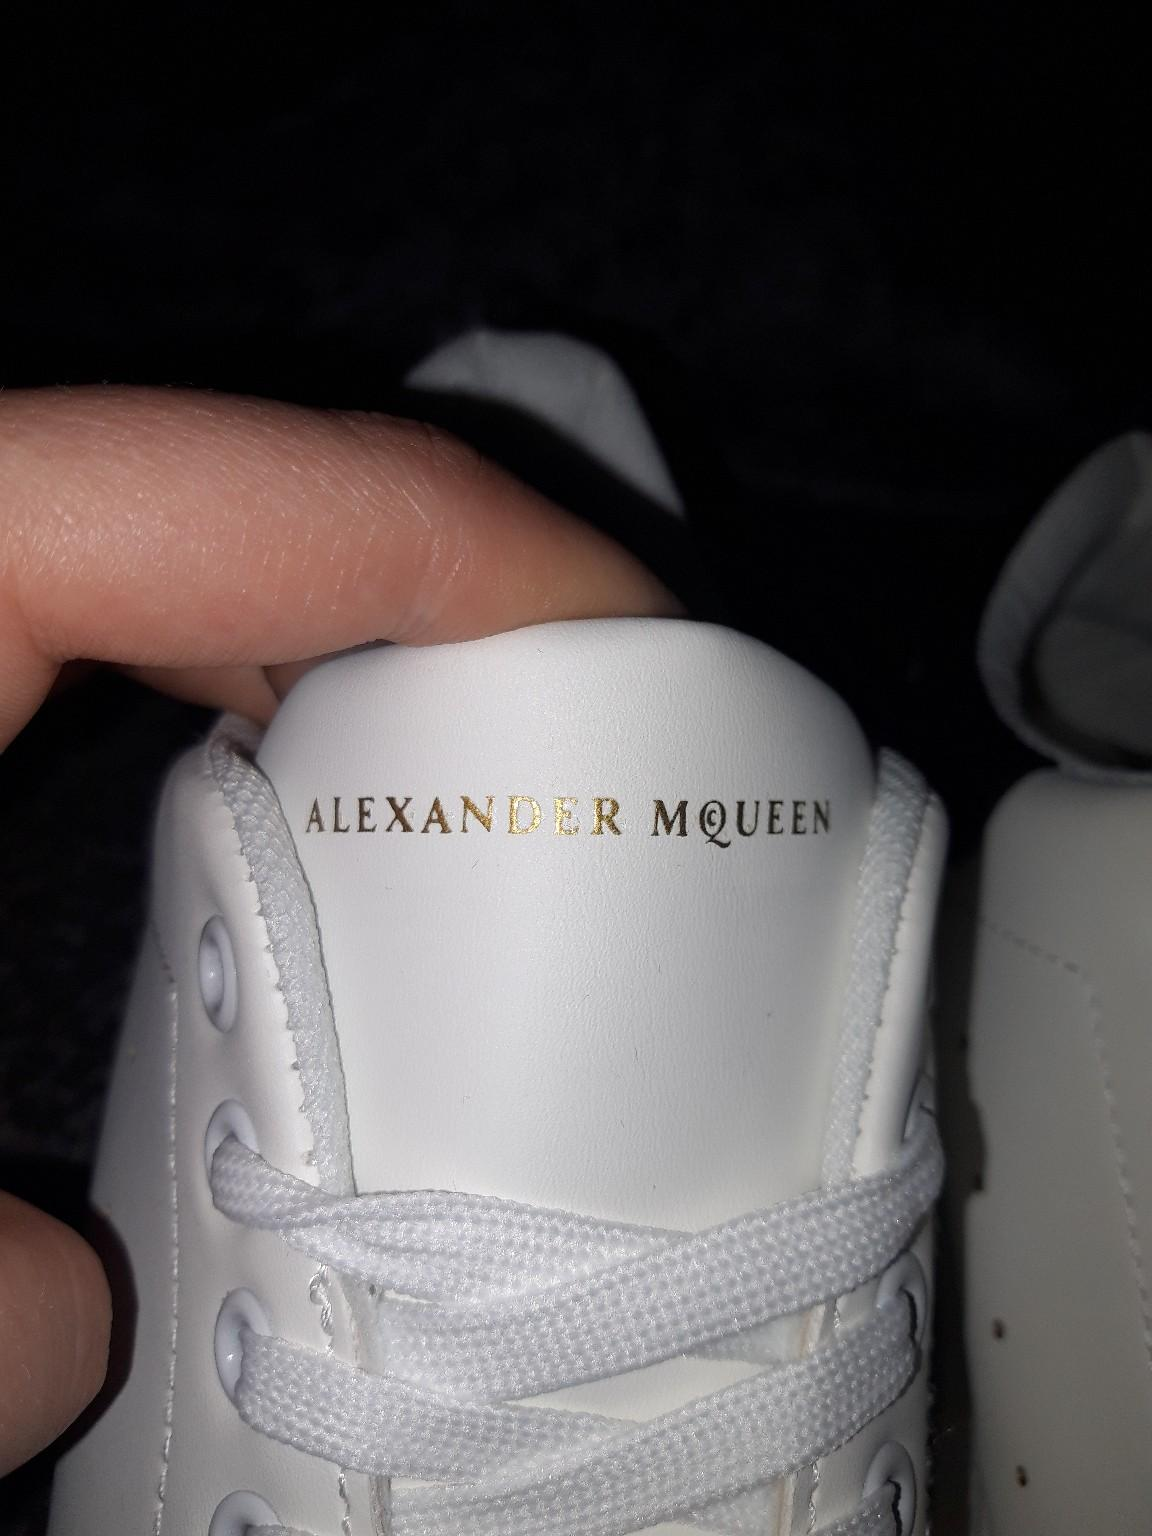 Replica Alexander McQueen Shoes